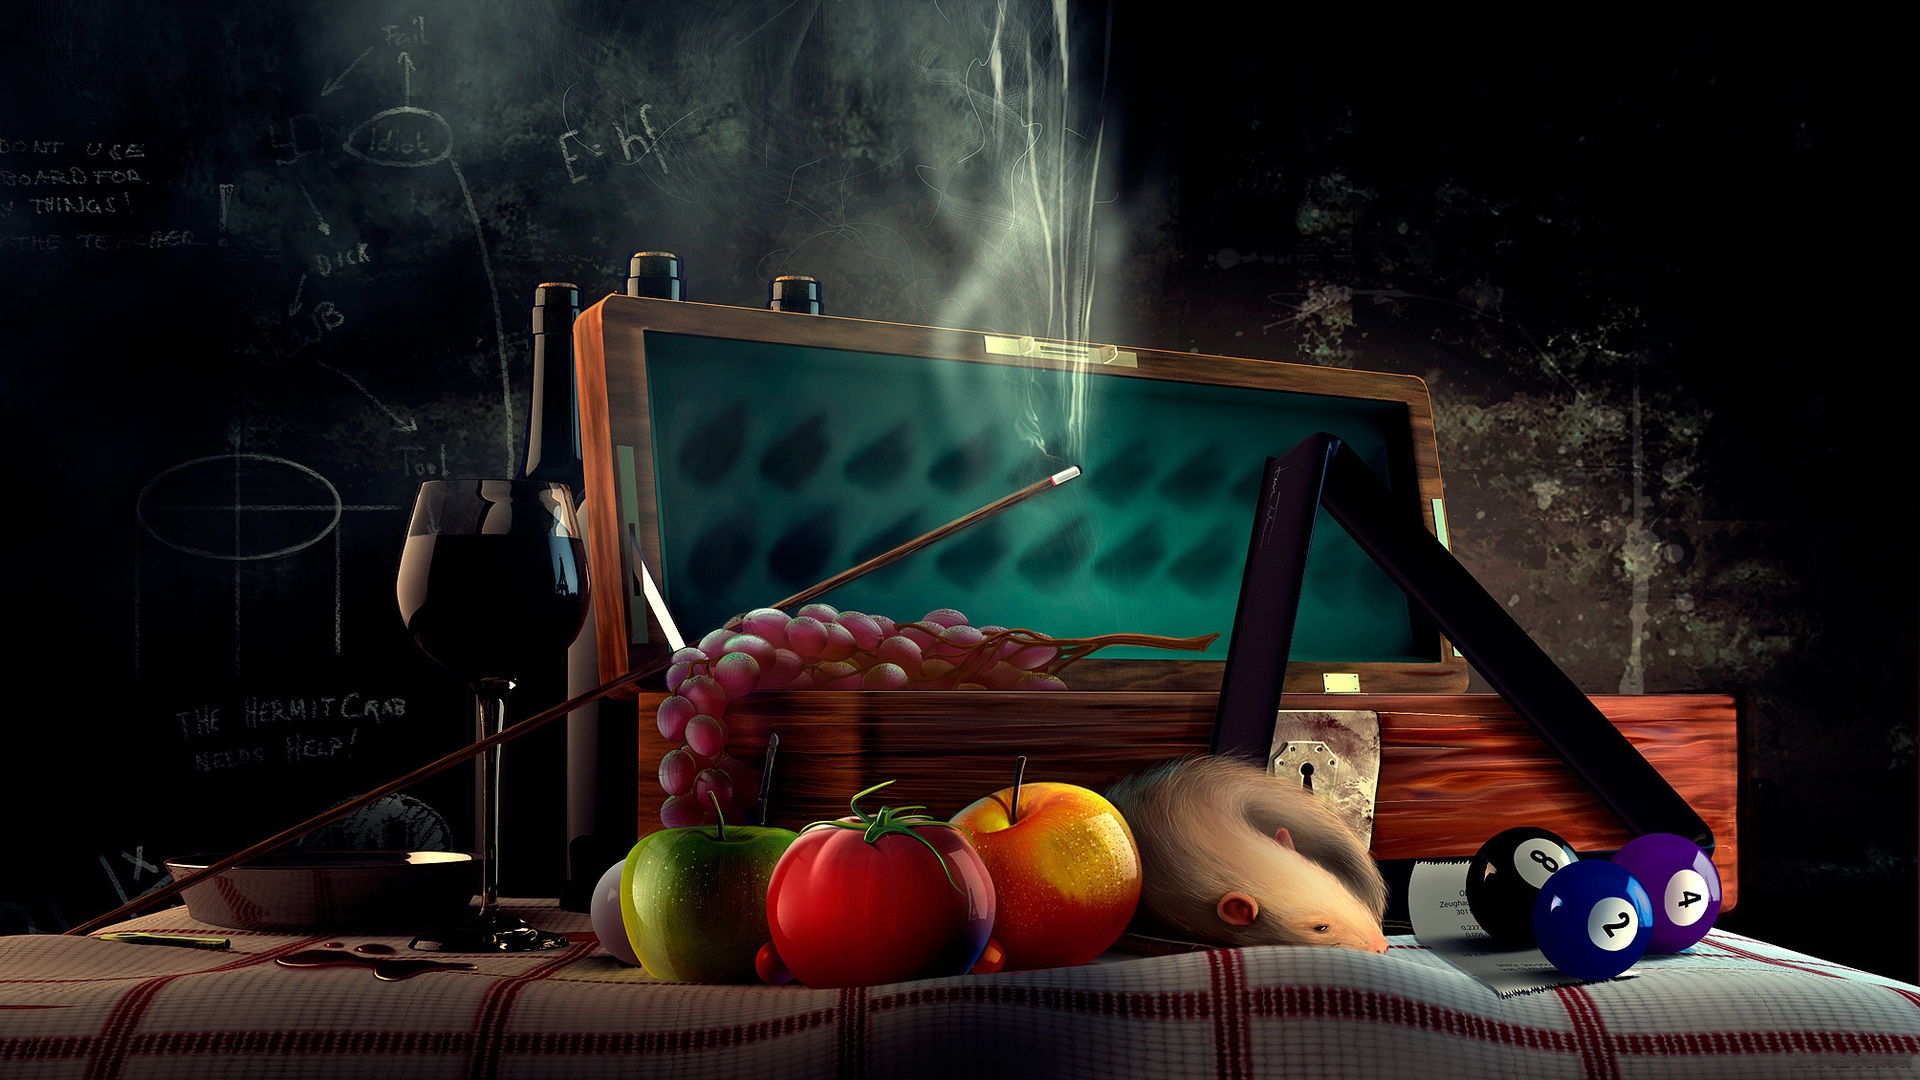 3d Wallpaper Pool Table Still Life Full Hd Wallpaper And Background Image